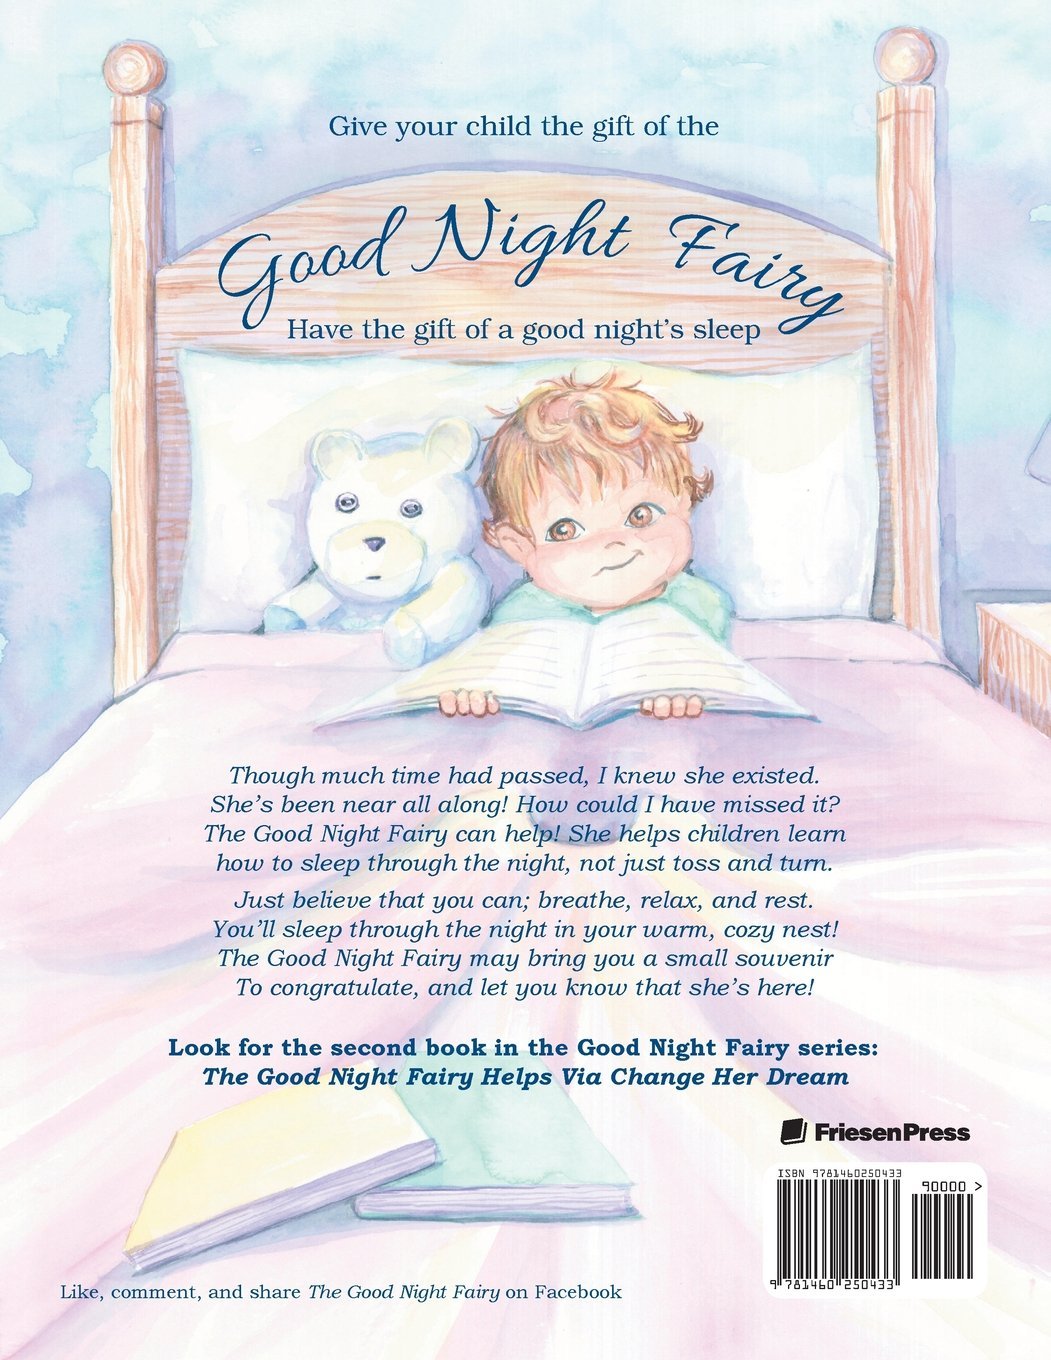 A Visit from the Good Night Fairy: Amazon co uk: Renée Frances